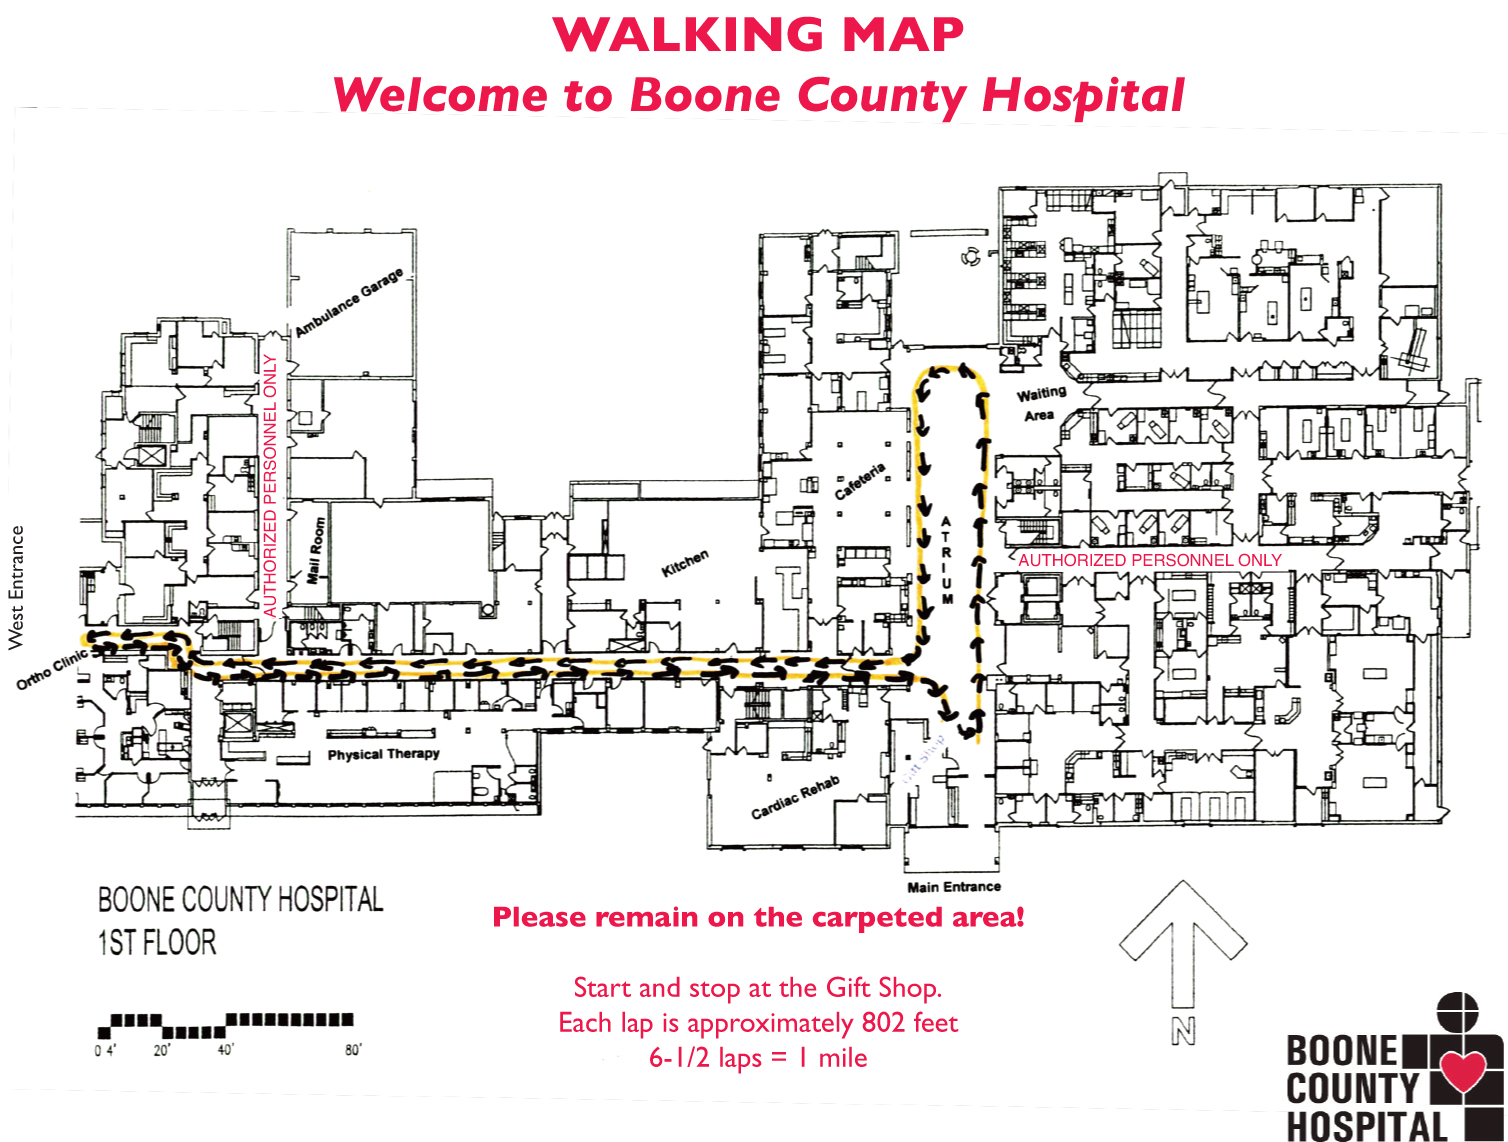 Walking Map for Boone County Hospital.